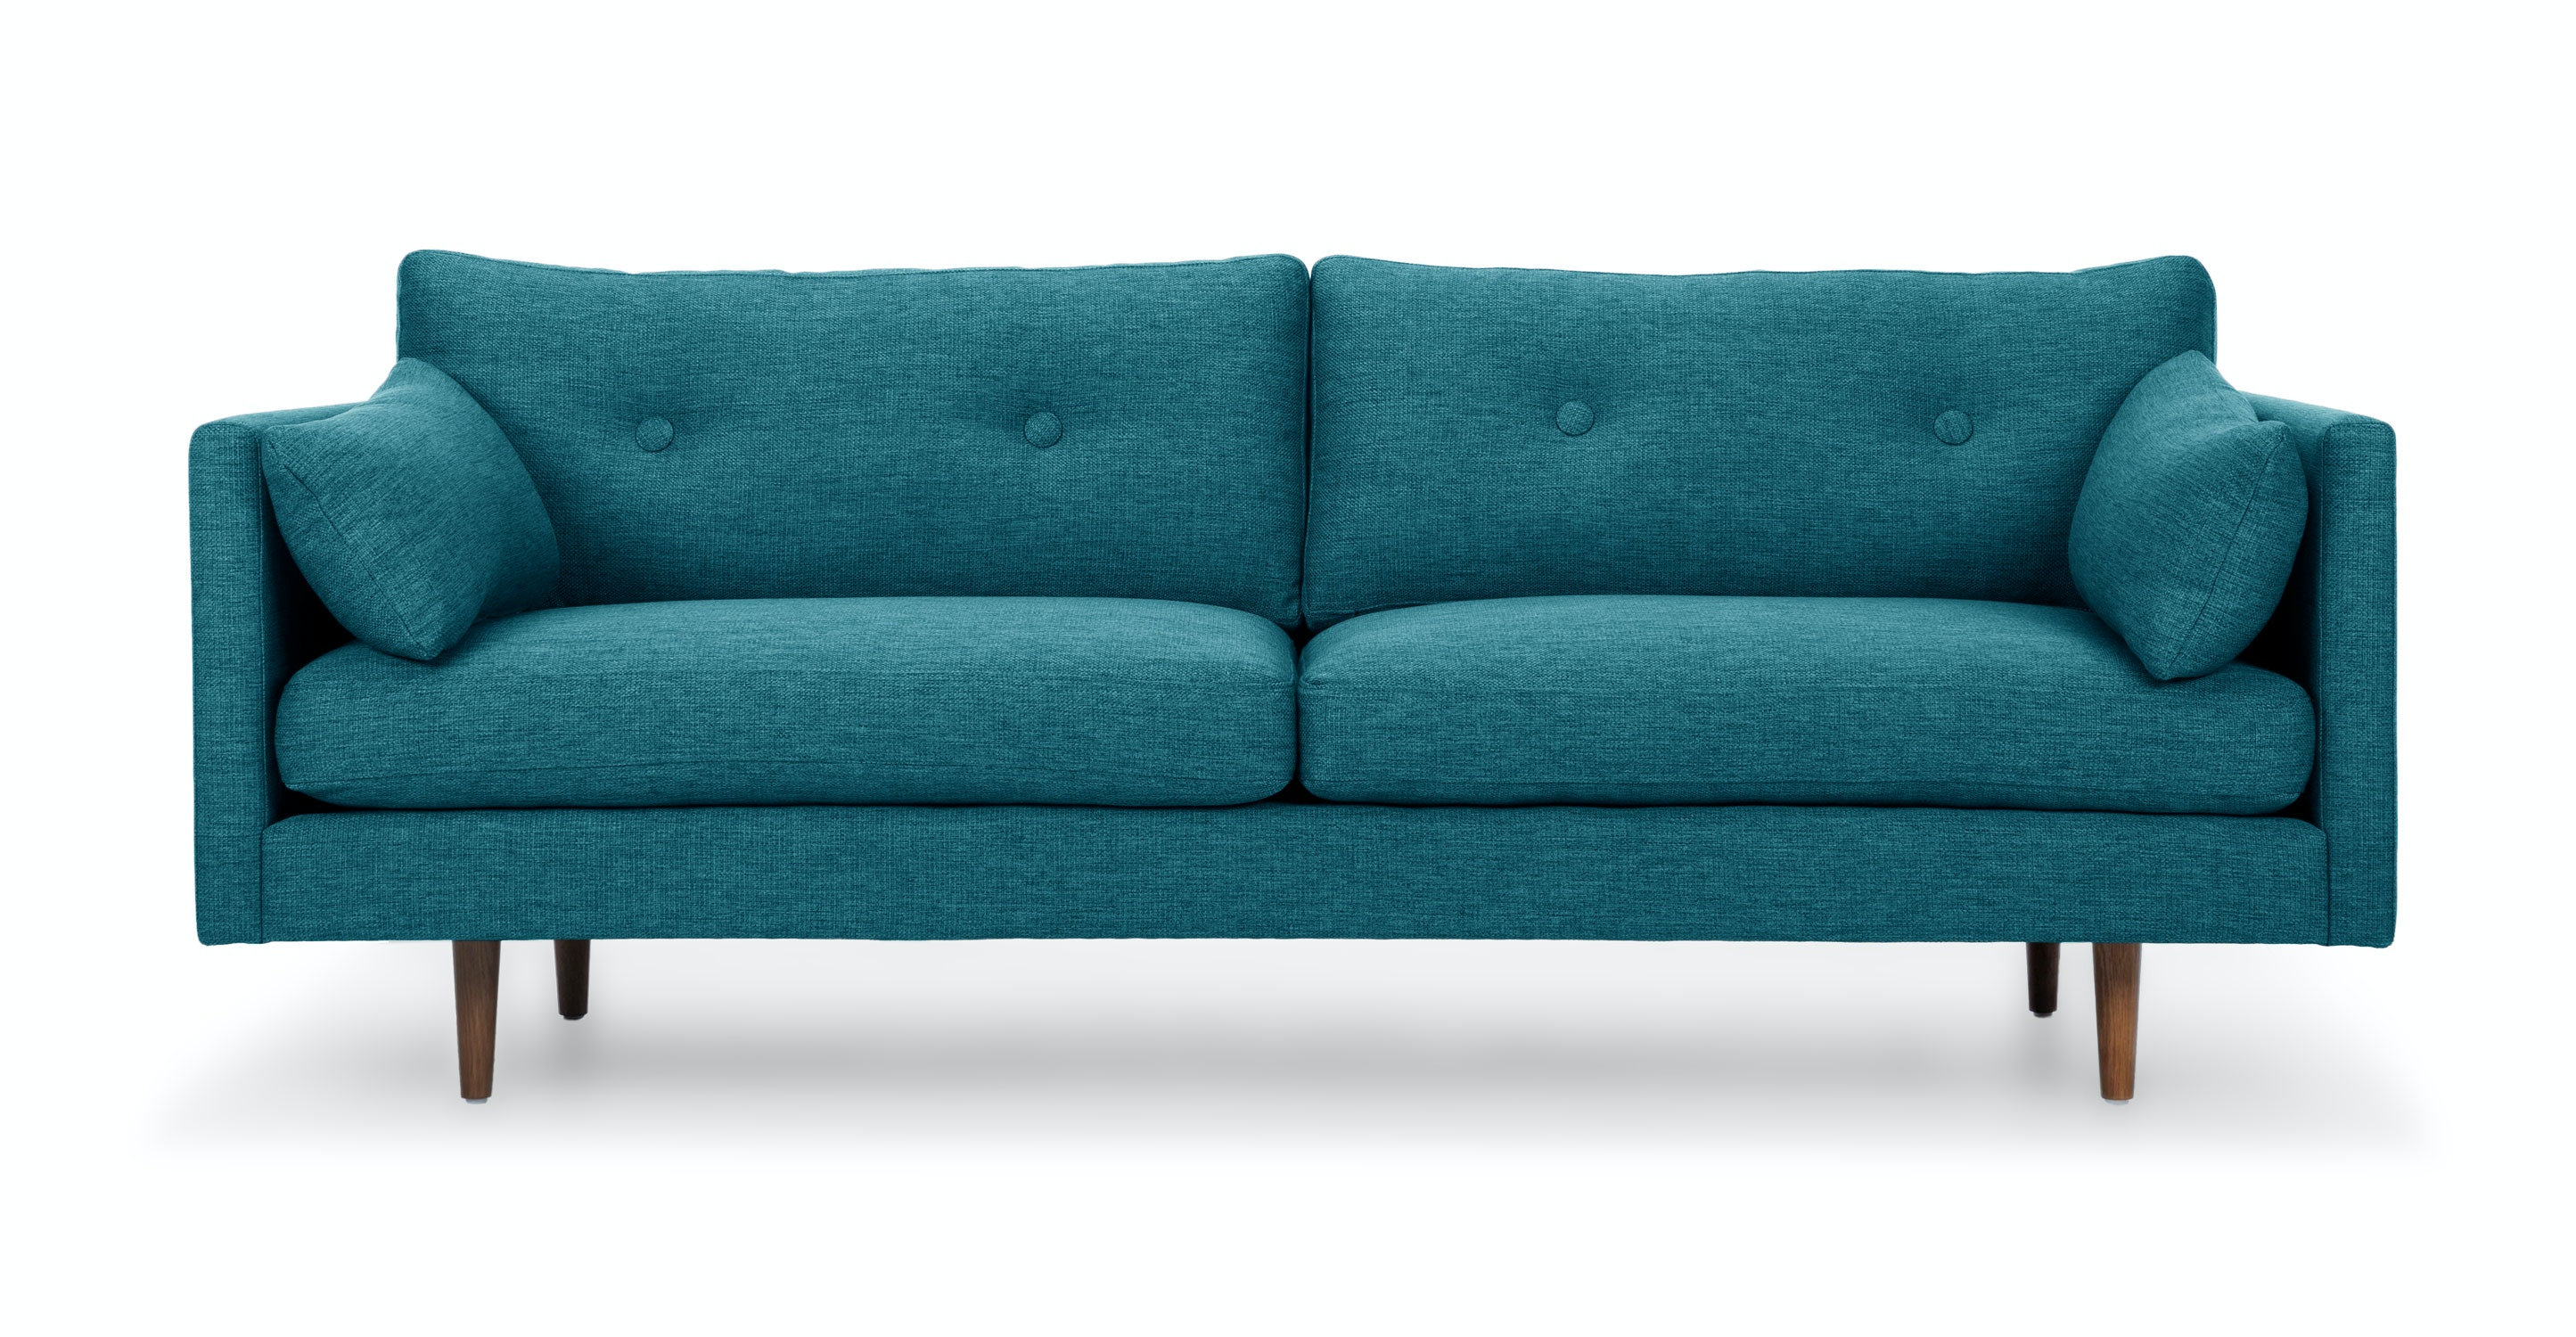 Turquoise Sofas Loveseats 1000 Ideas About Turquoise On Turquoise Sofa And Mid Century Modern